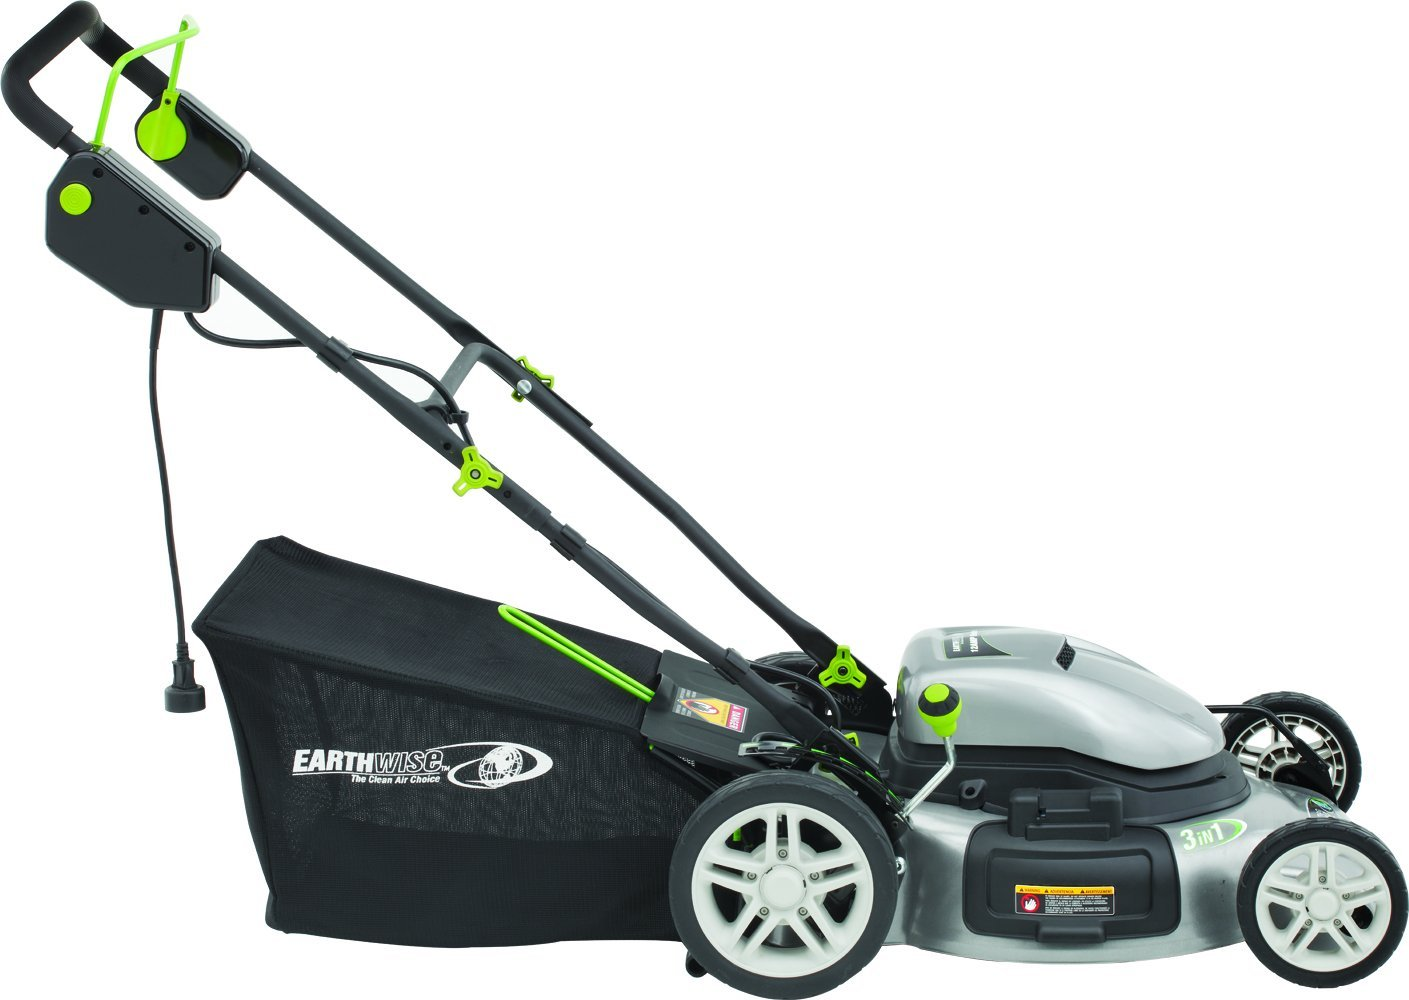 Best Corded Electric Lawn Mower Decor Ideasdecor Ideas